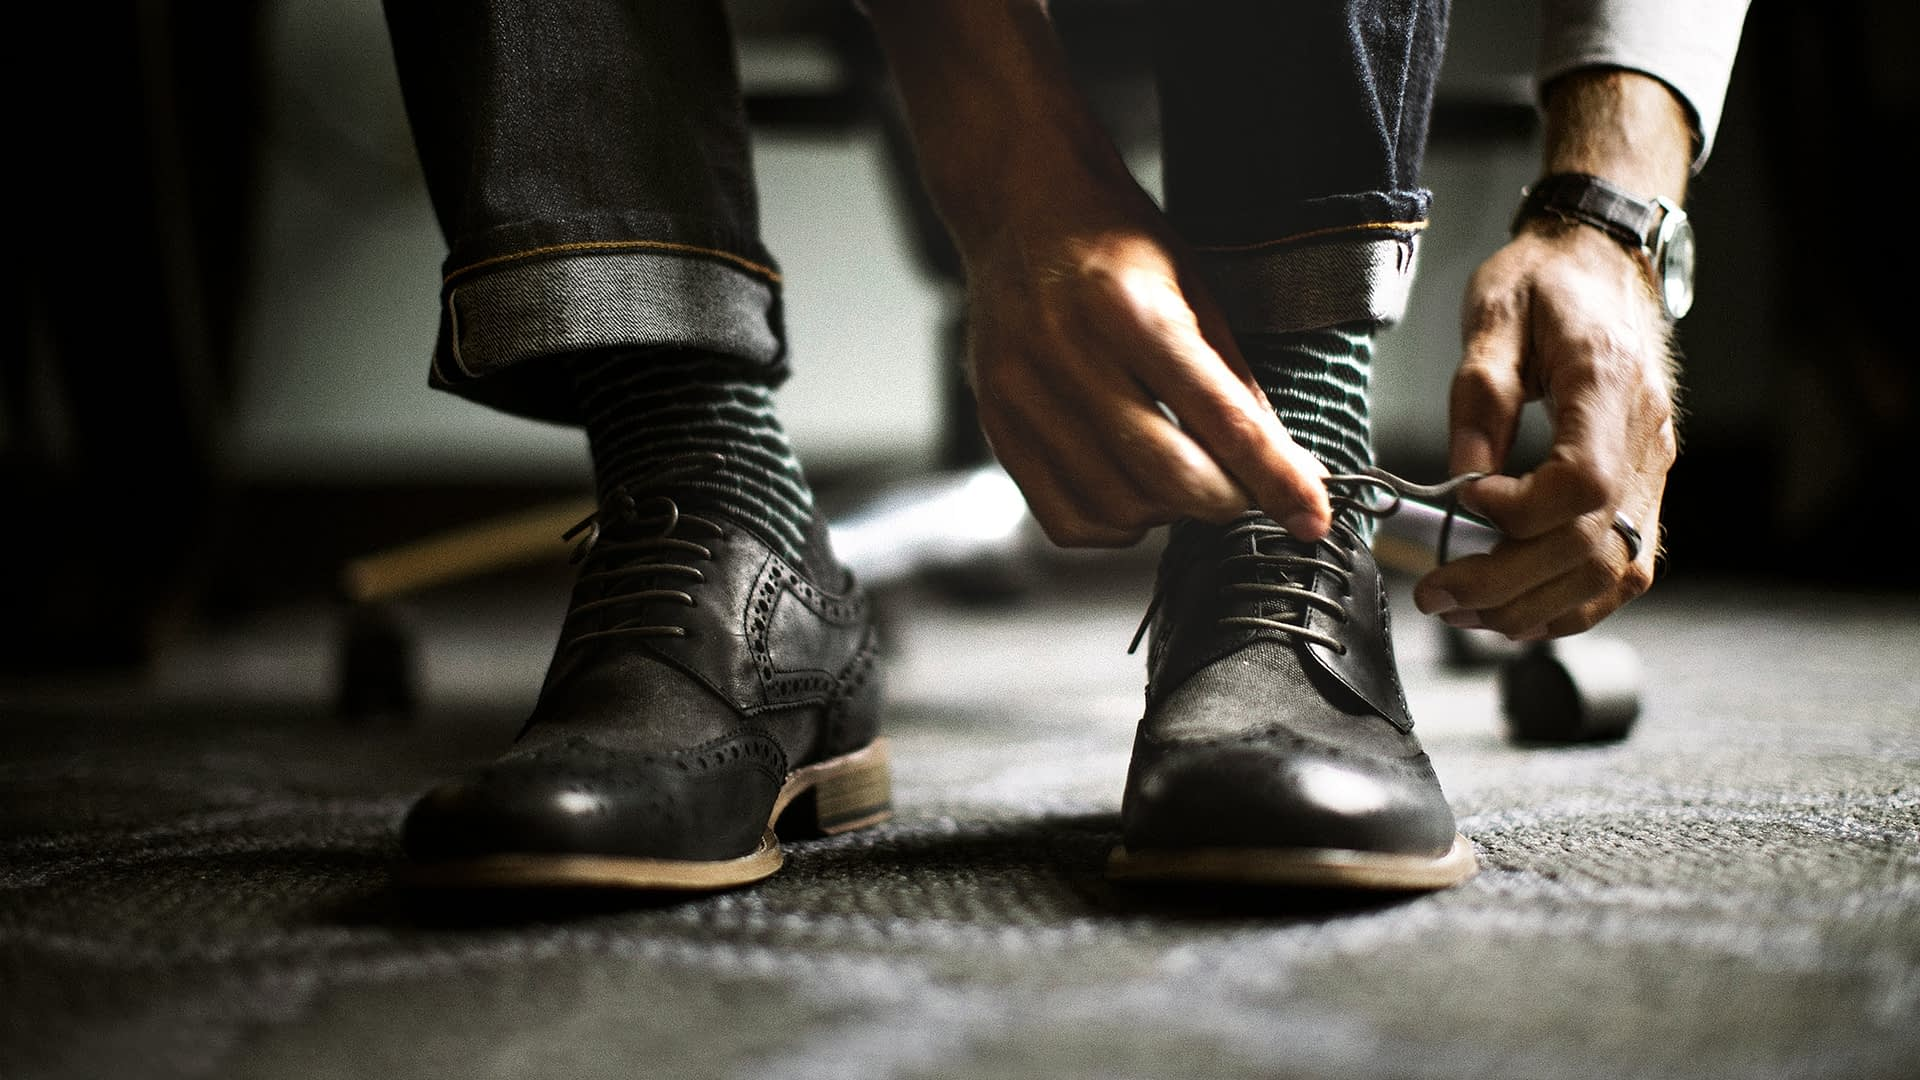 Man ties shoes at luxury hotel in Seattle, Washington.